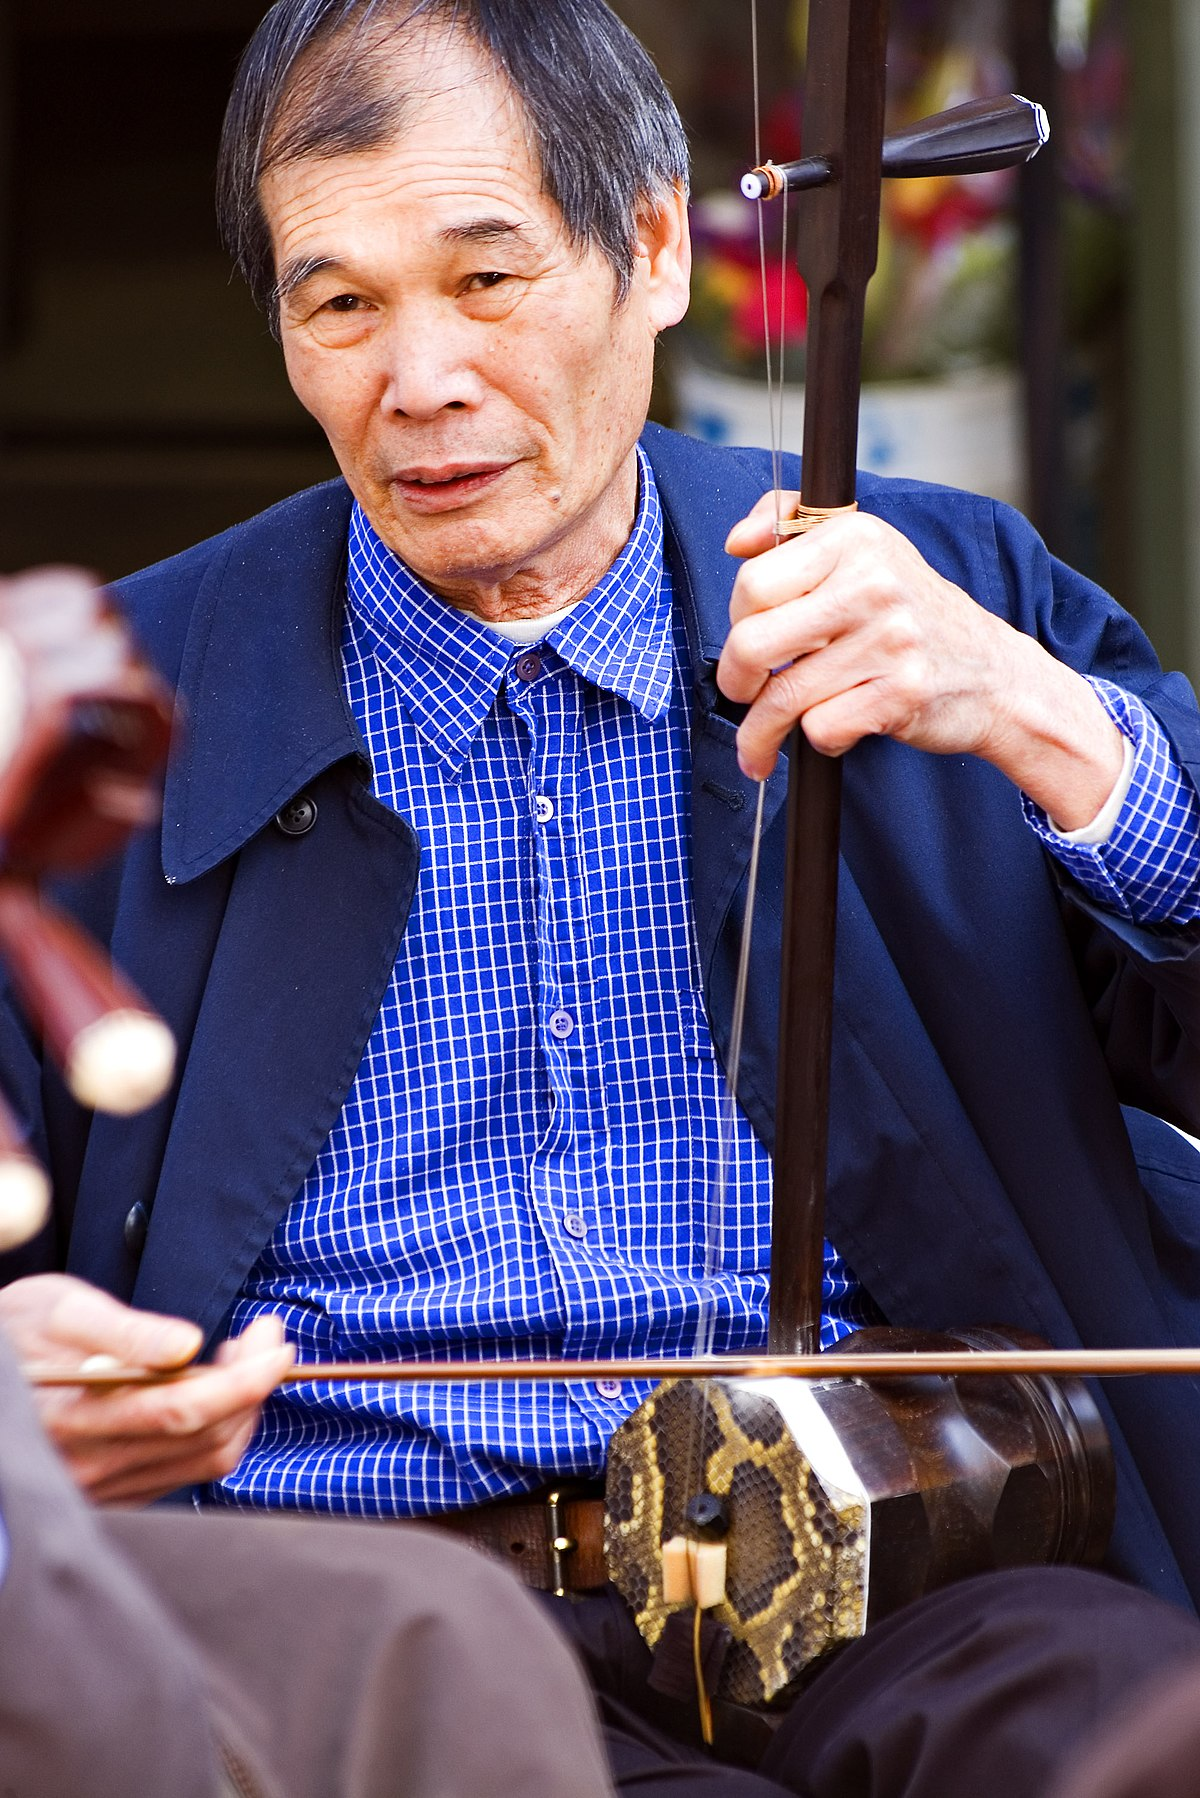 Very interested in the erhu. Beginner's questions ...